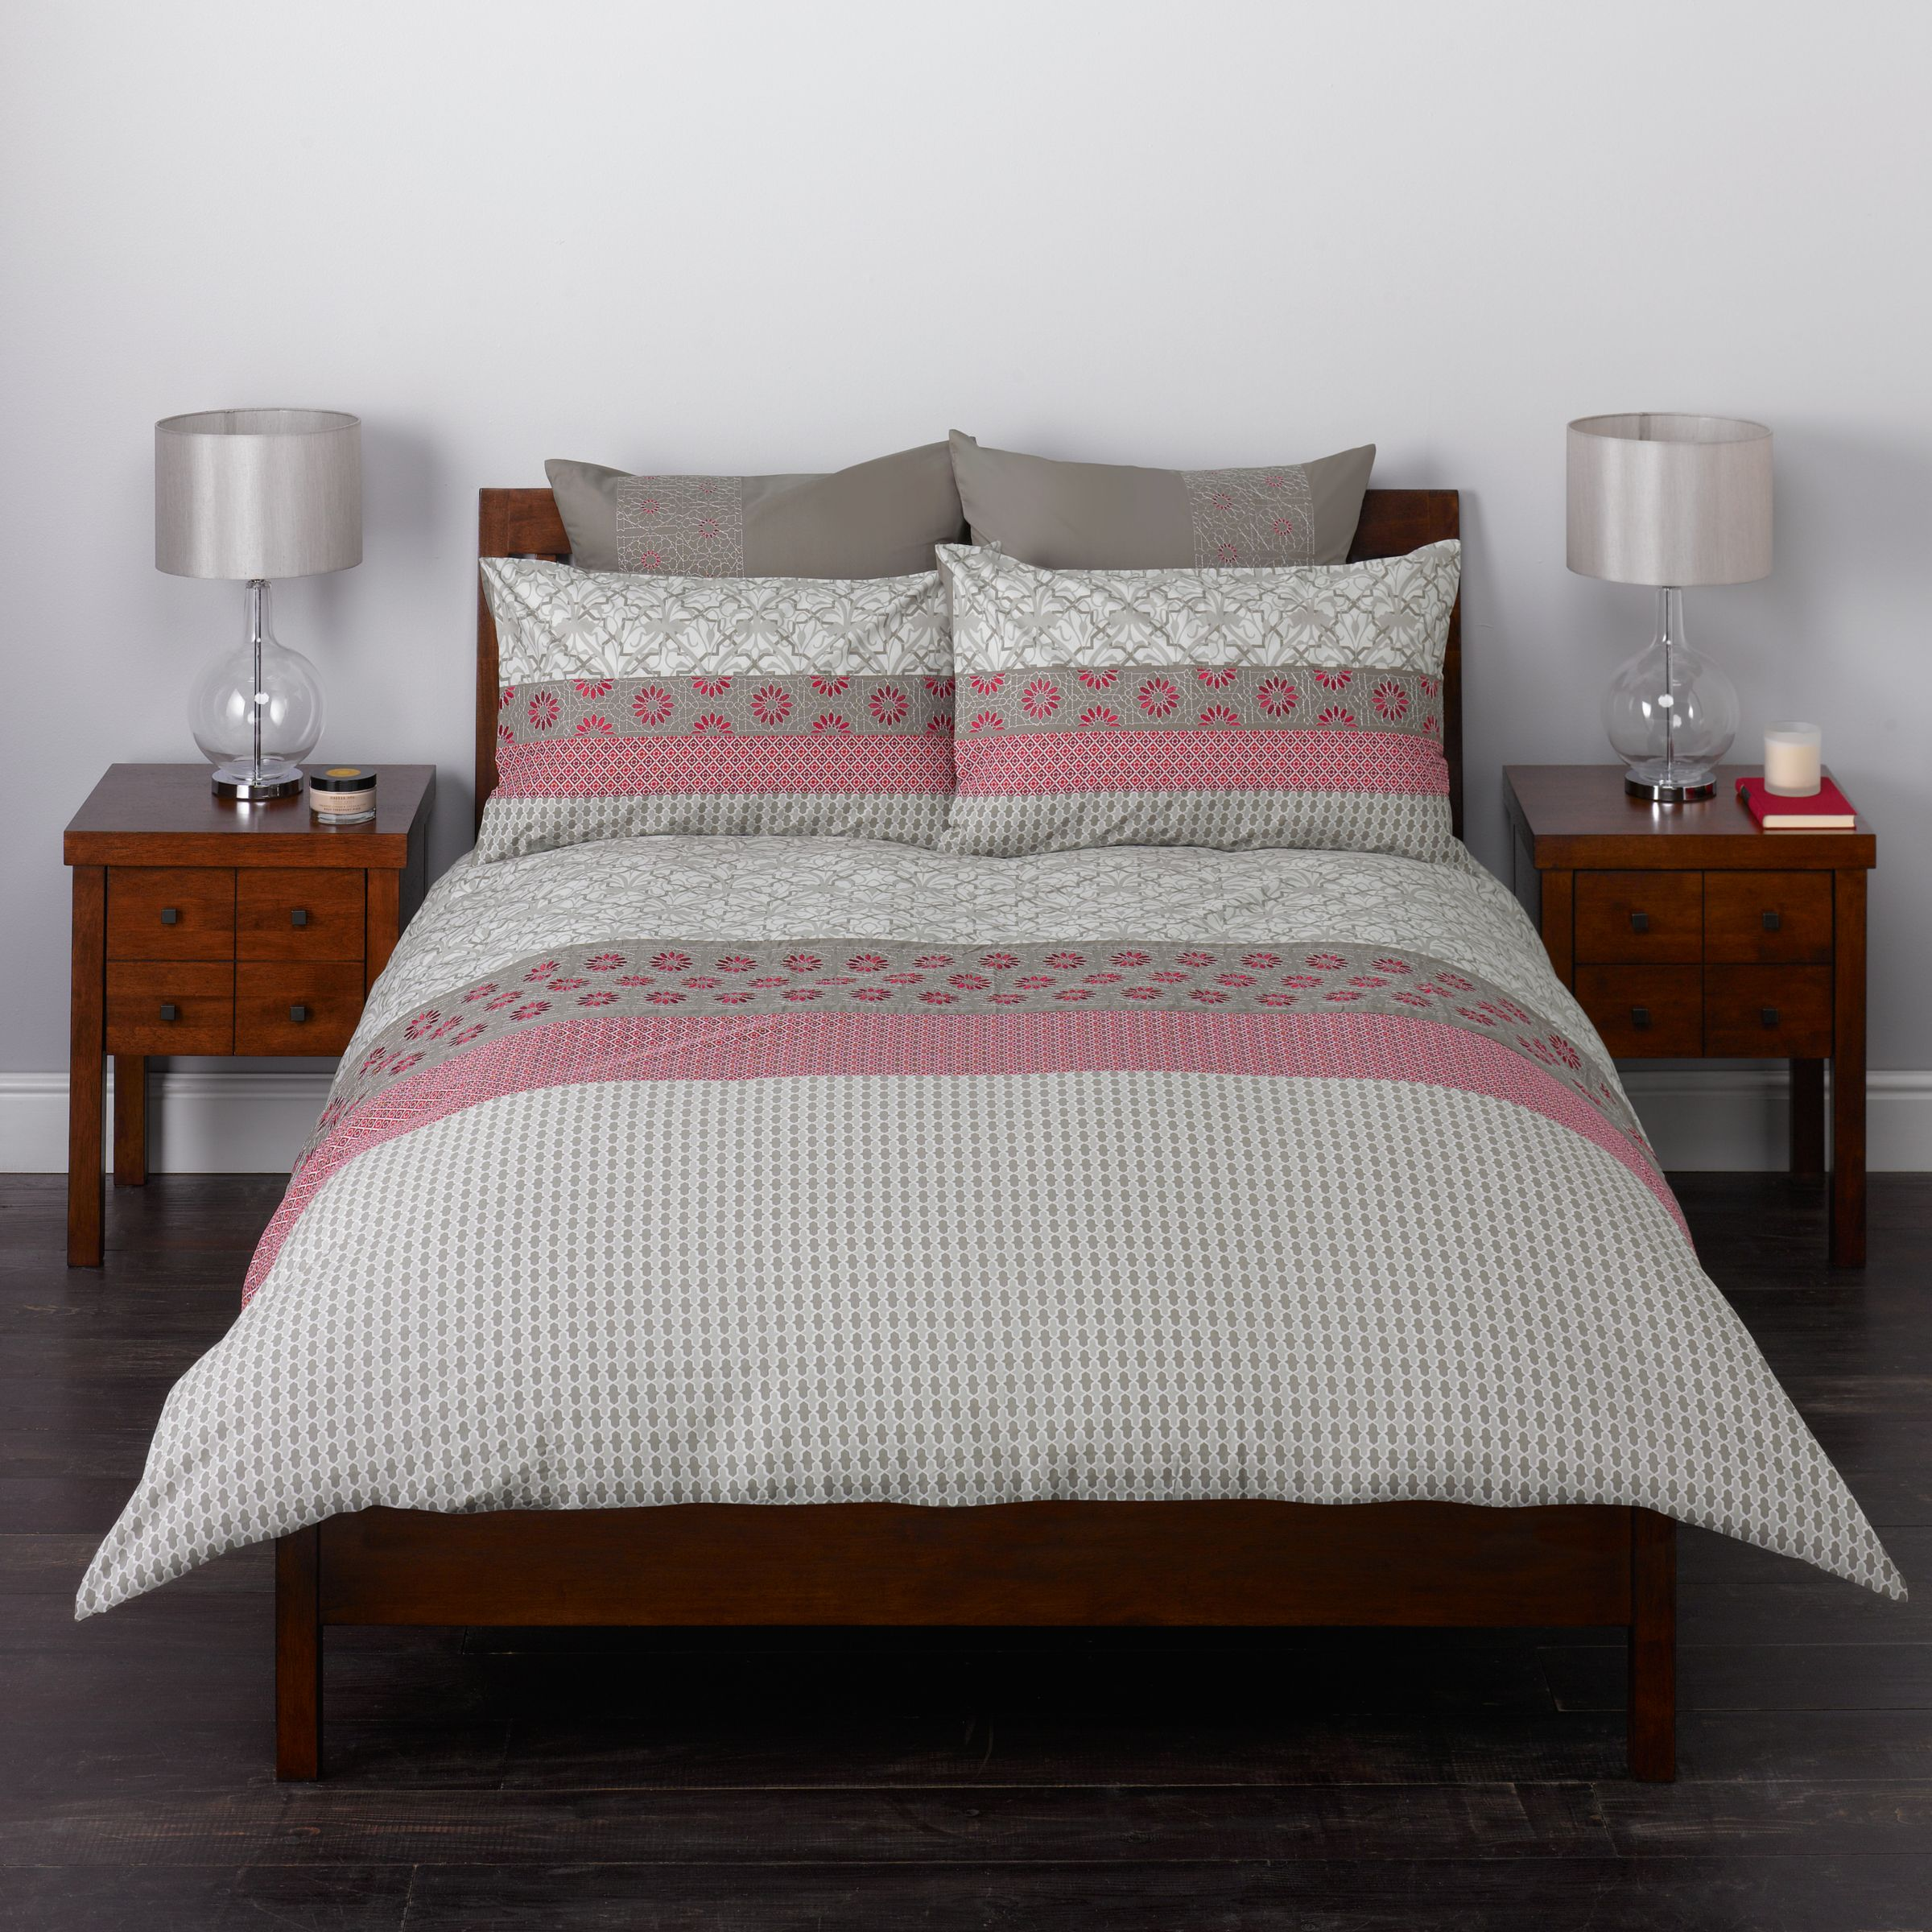 john lewis alimah duvet covers red review compare. Black Bedroom Furniture Sets. Home Design Ideas